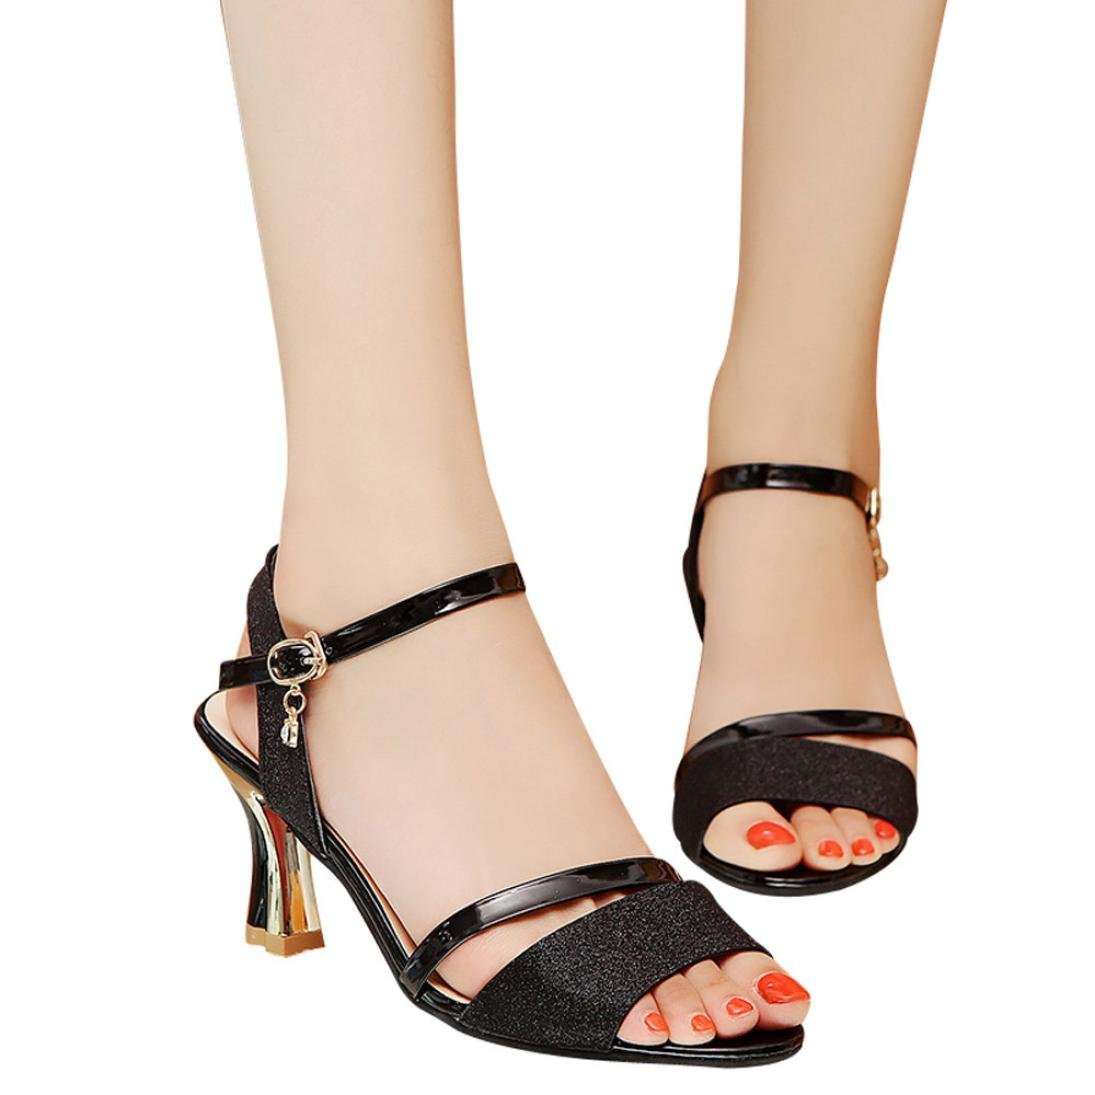 vermers Fashion Women Sequins Sandals Ankle High Heels Block Party Open Toe Shoes(US:7, Black)